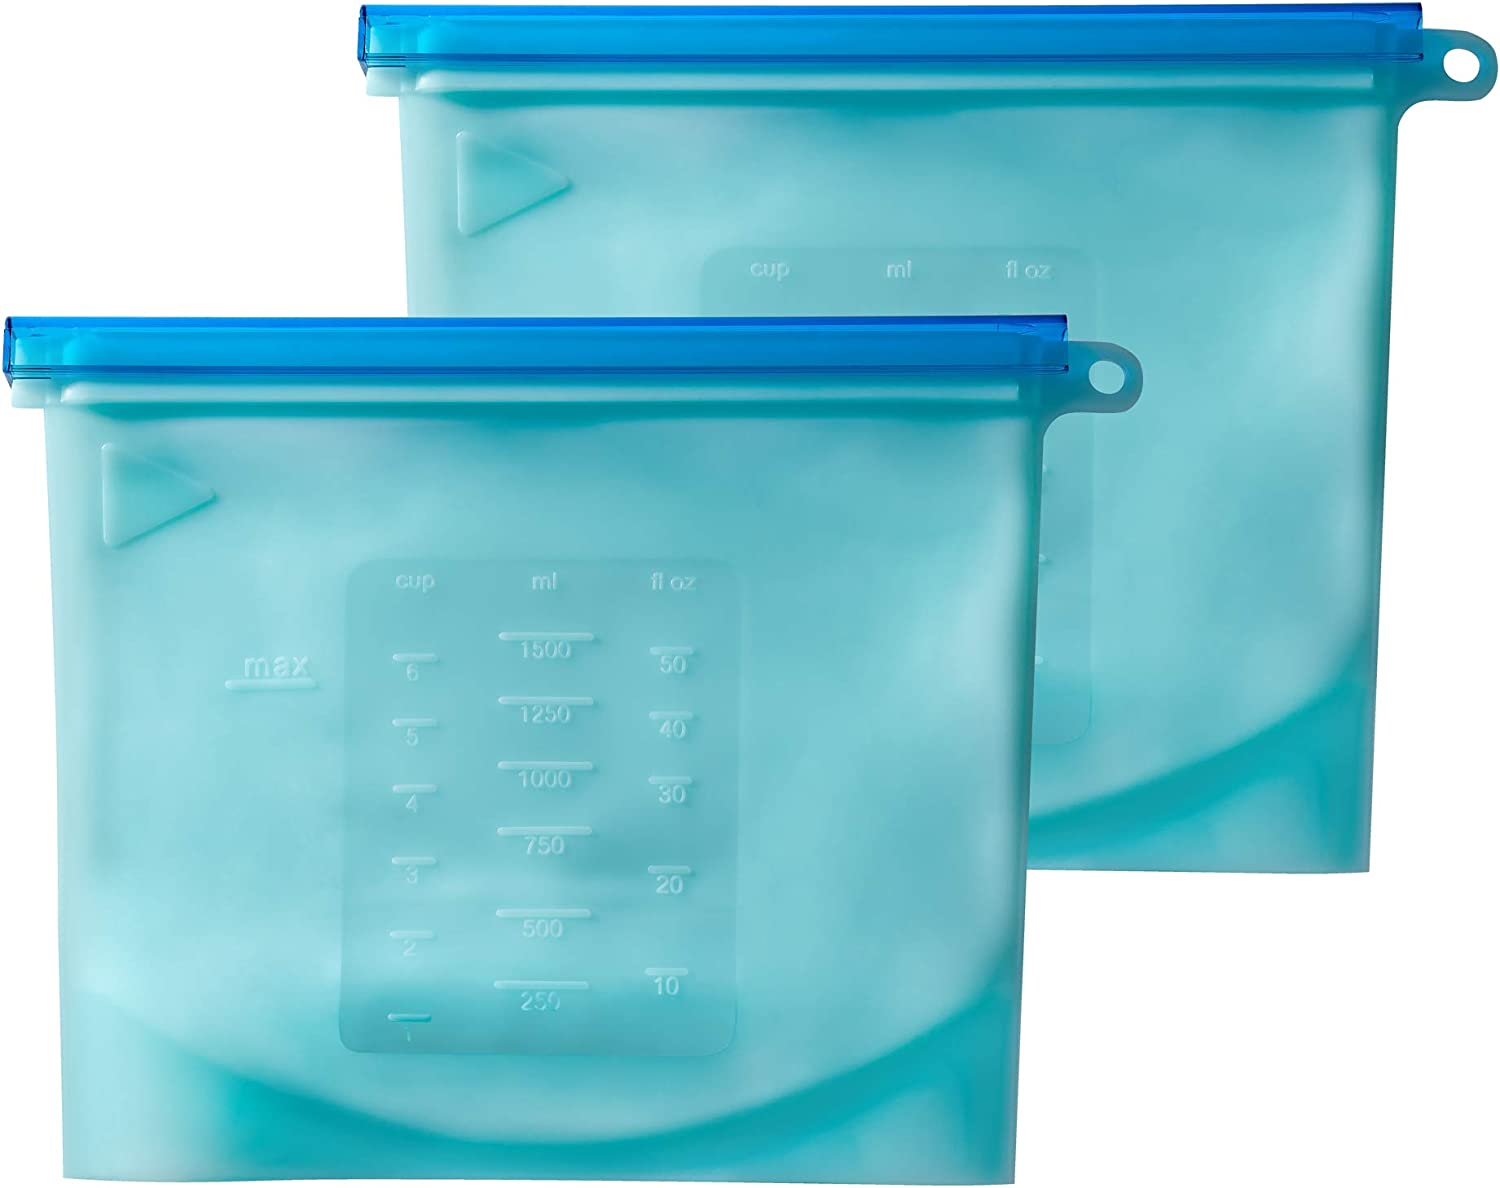 PrimeMed Airtight Food Storage Bags – Reusable Silicone Freezer Bag for Food Preservation (Blue, 1500 mL) (2 Pack)